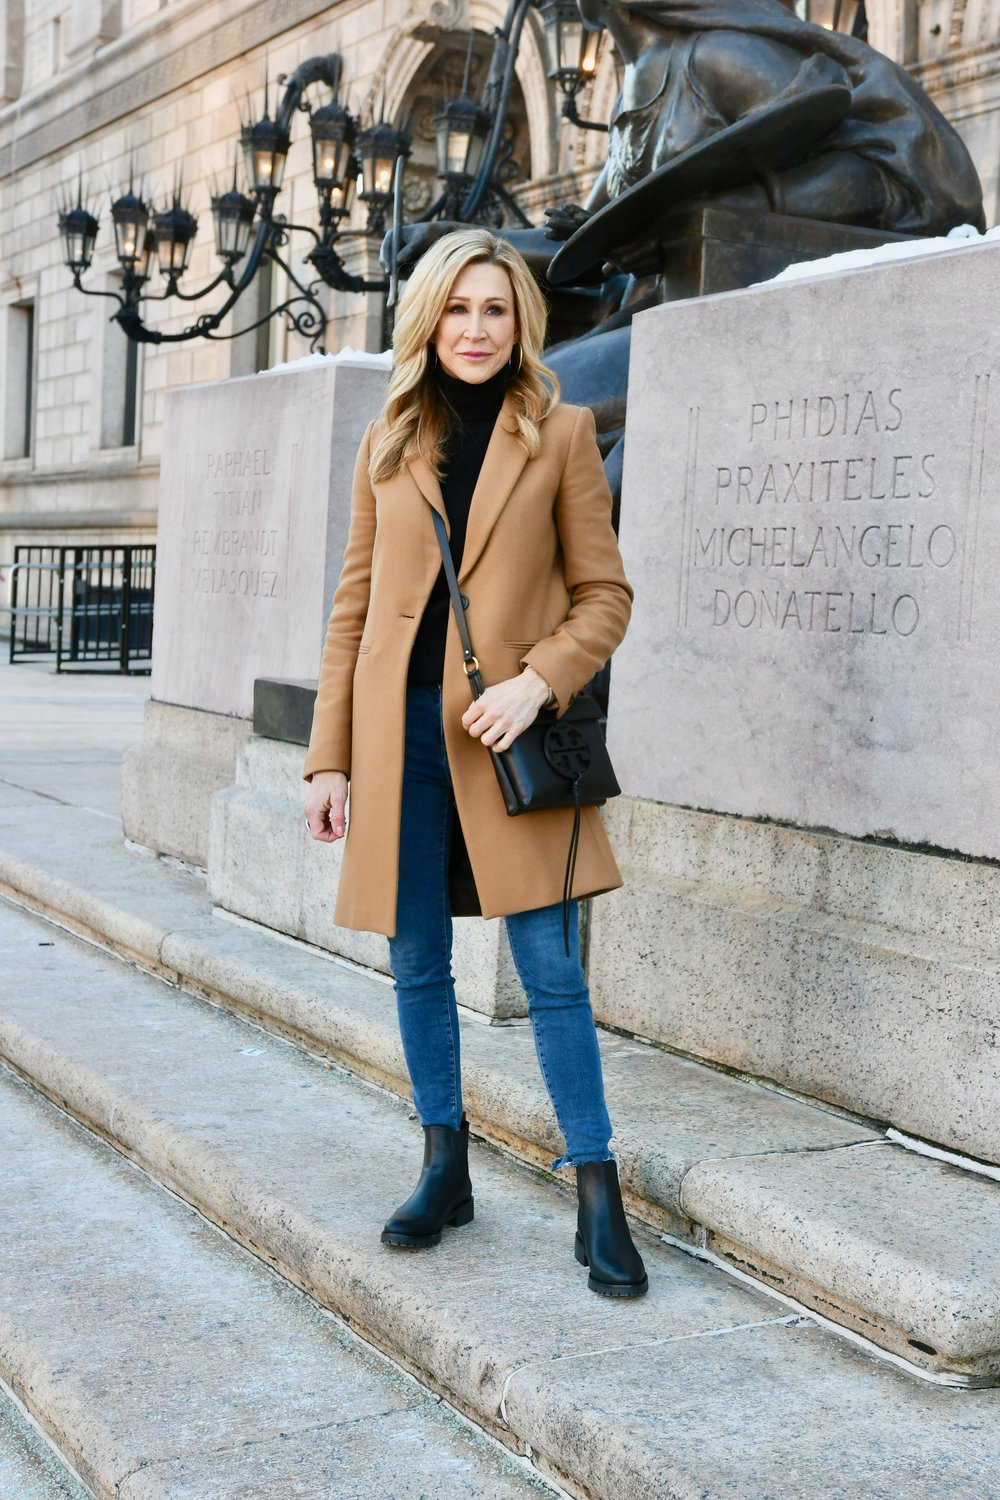 Wearing a Camel Coat